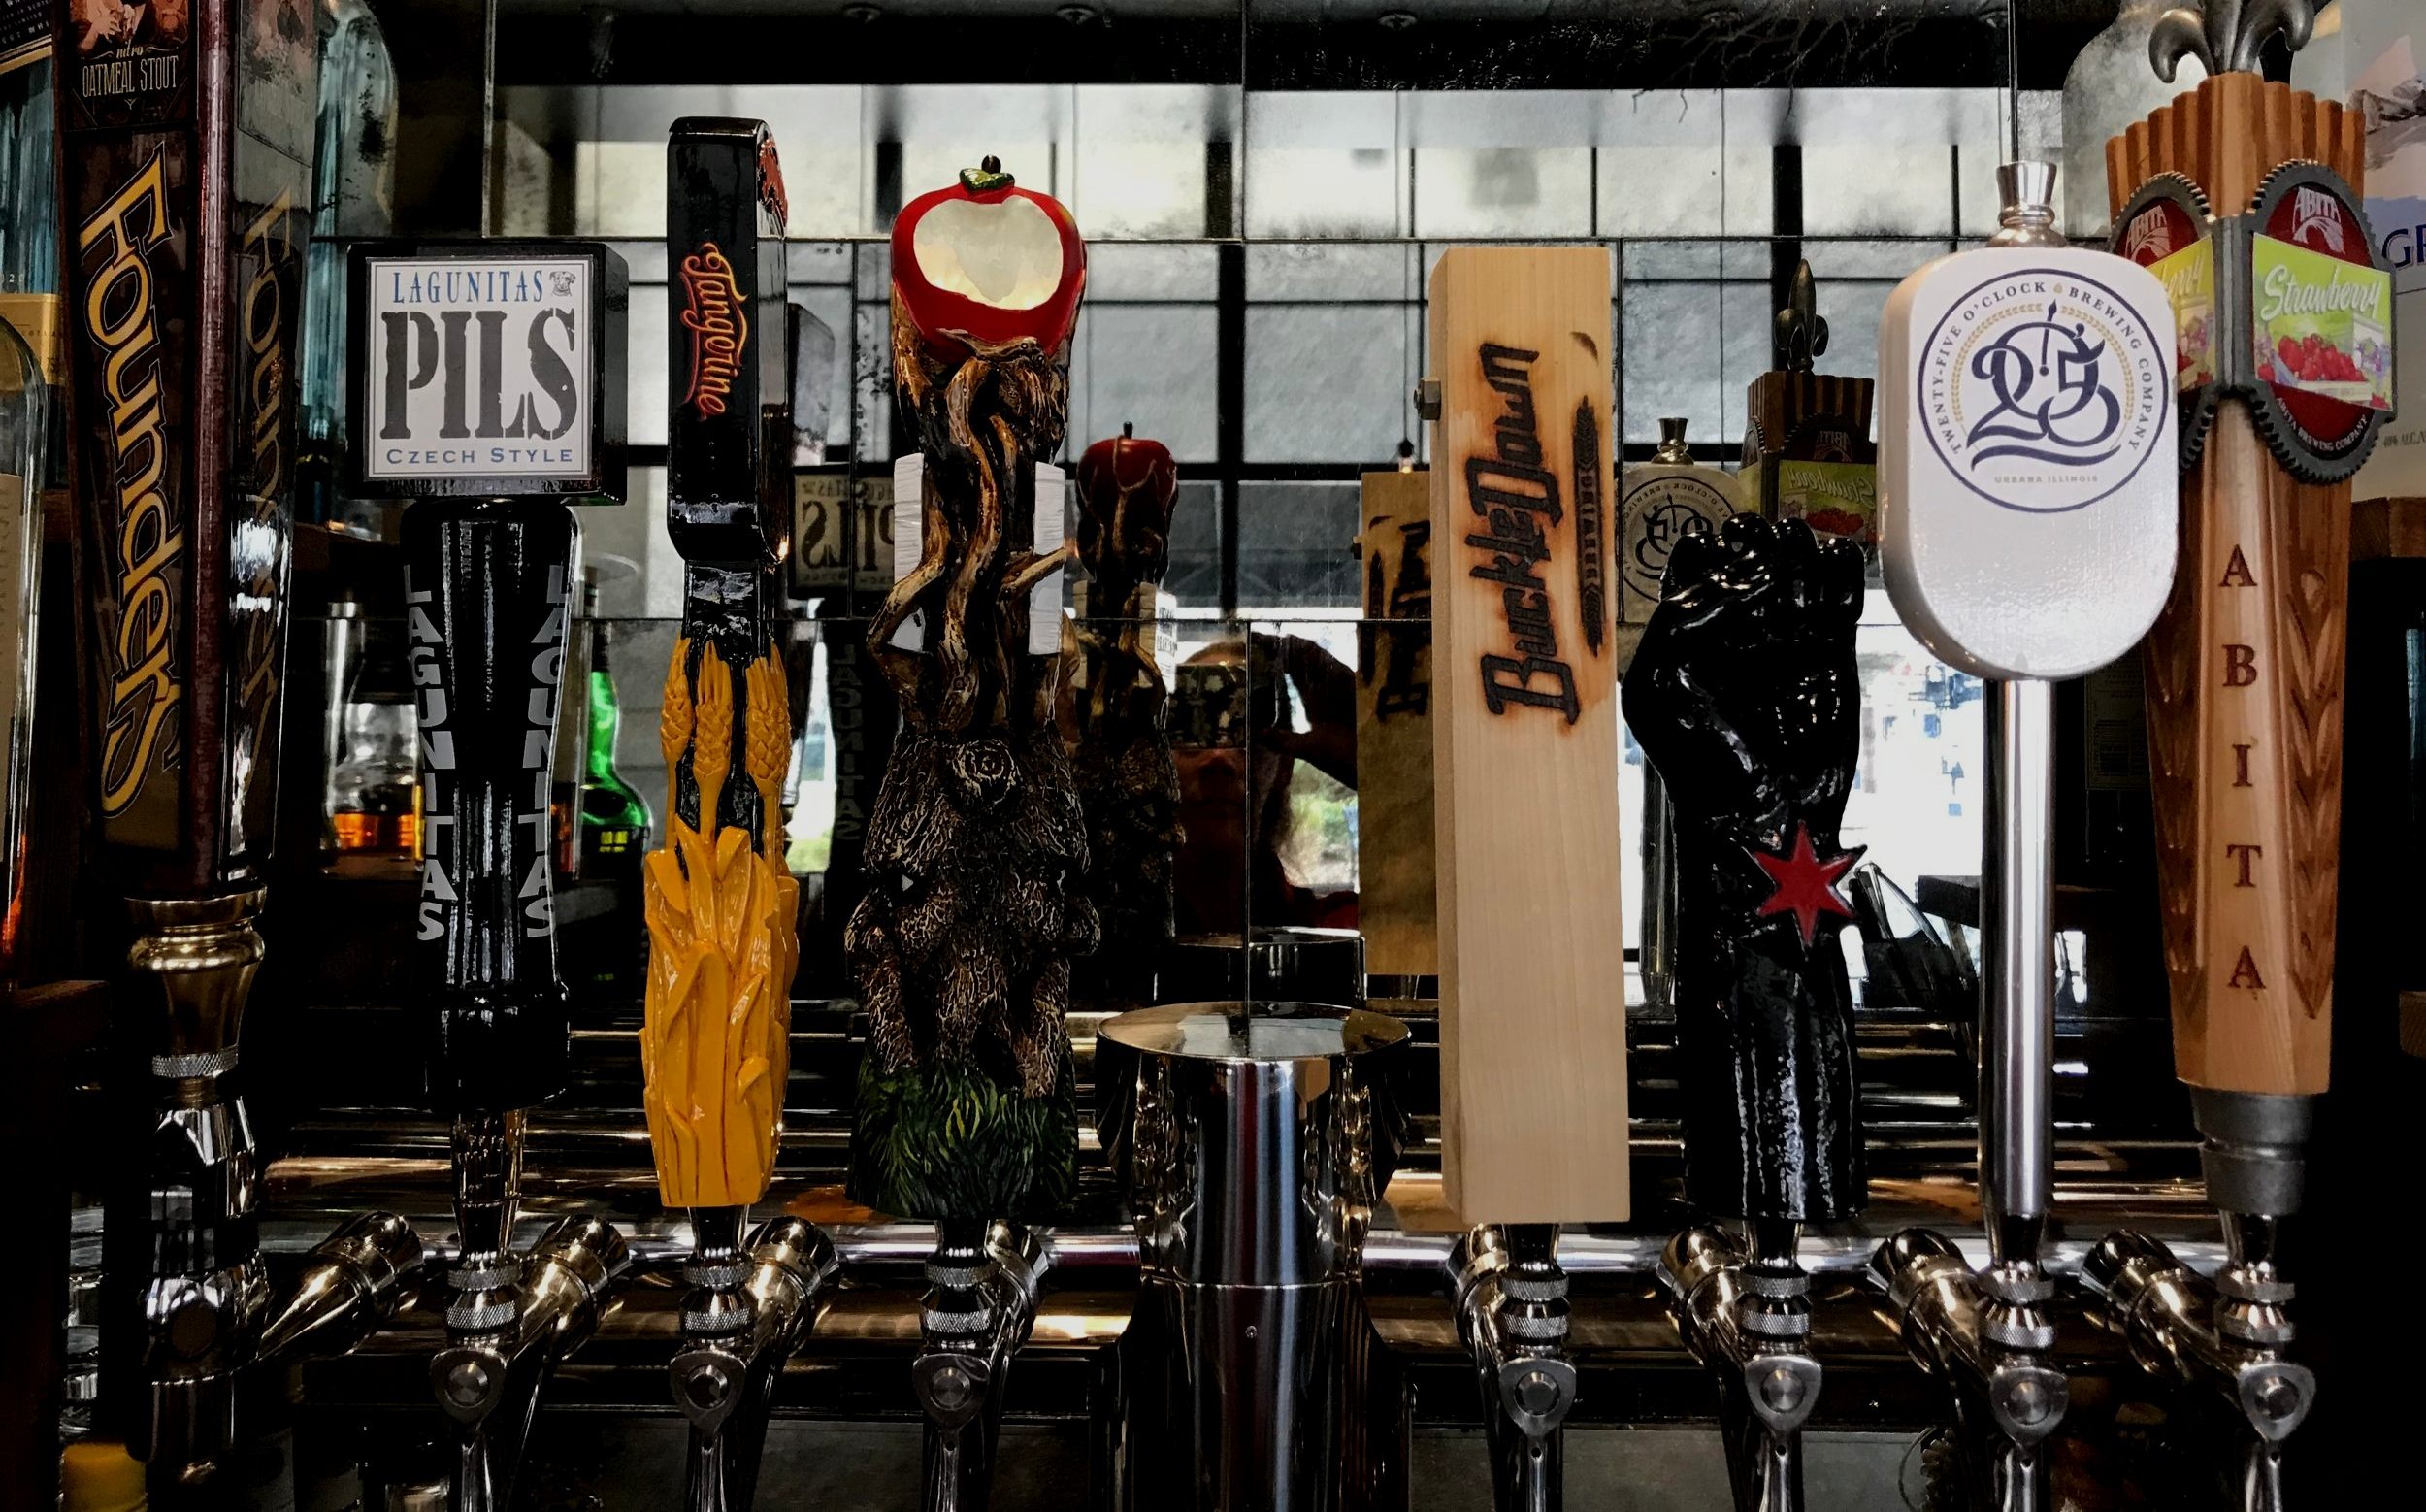 DRAFT BEERS - Our 16 rotating taps showcase up and coming and classic microbreweries.Great young breweries like Tryptych, White Oak, Big Thorn, Heavy Riff and Evil Horse join classic regional breweries such as Bells and Founders.